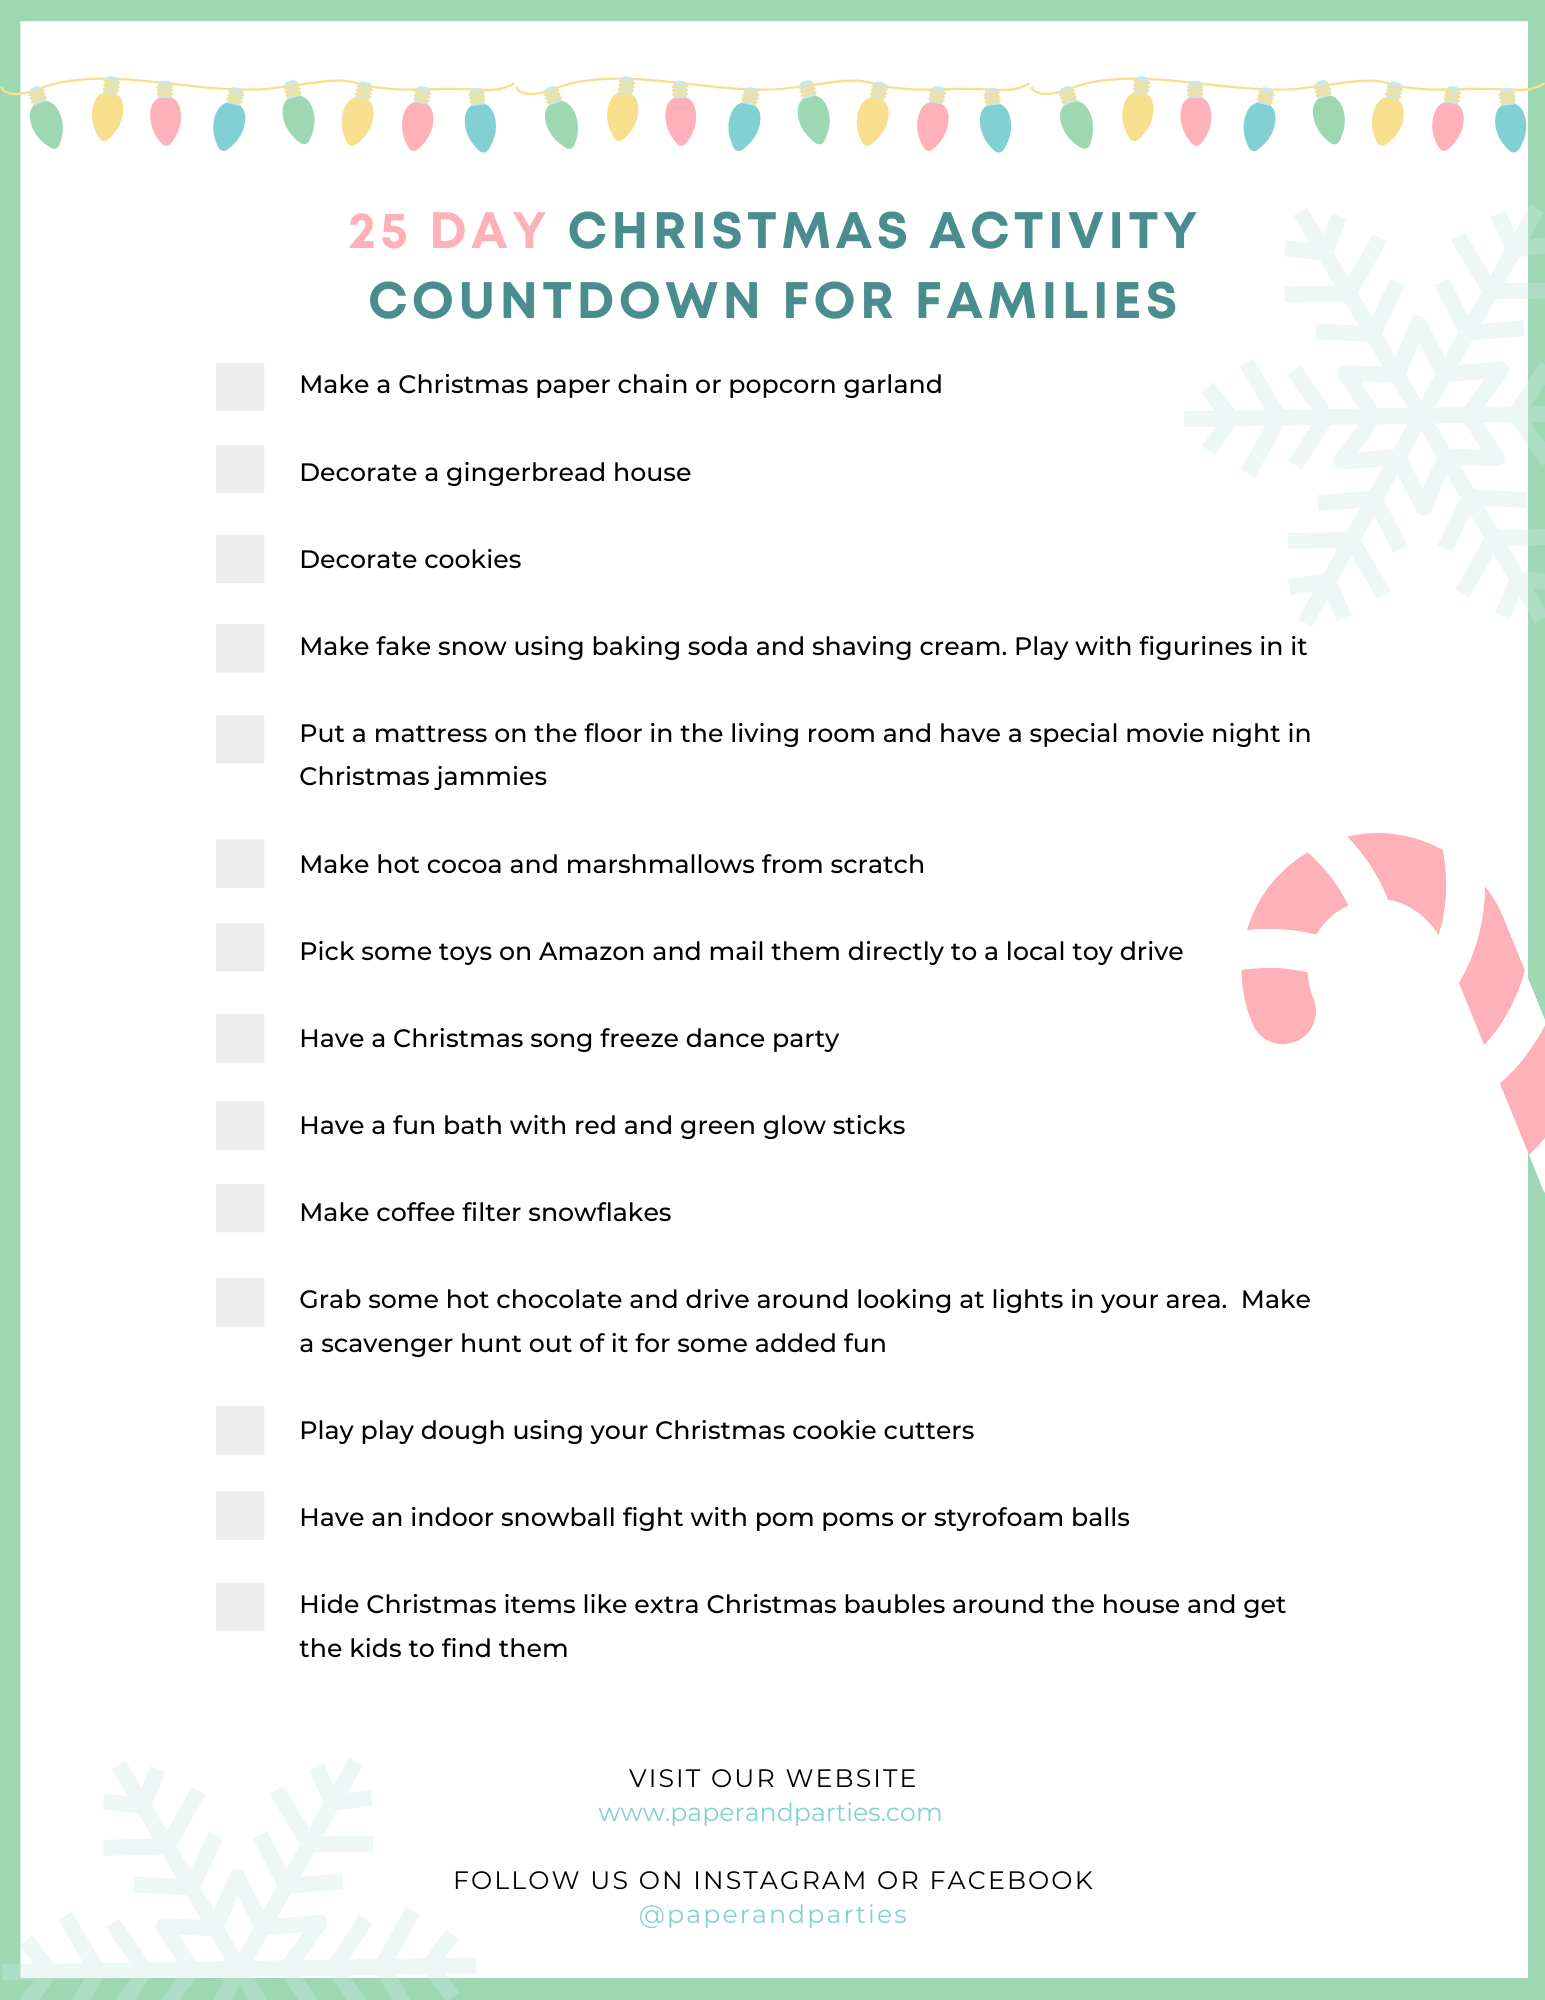 25 Day Christmas Activity Countdown For Families - Paper & Parties